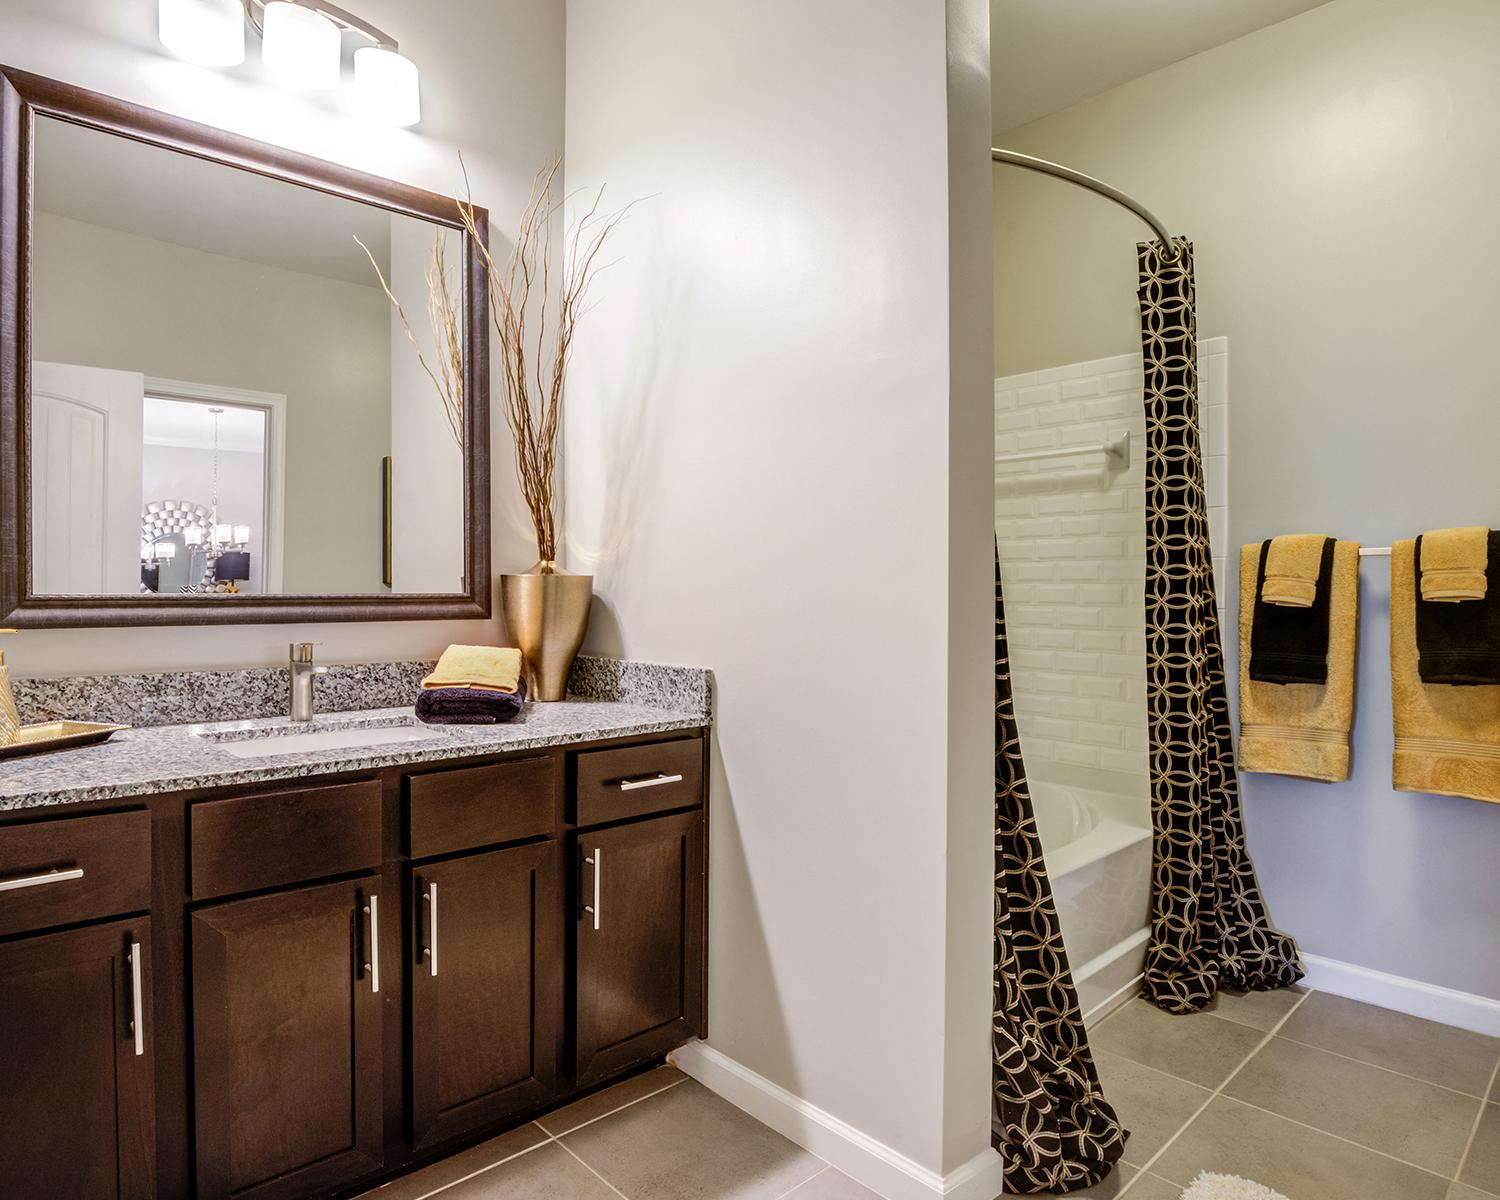 Modern Bathroom at Greymont Village Apartments